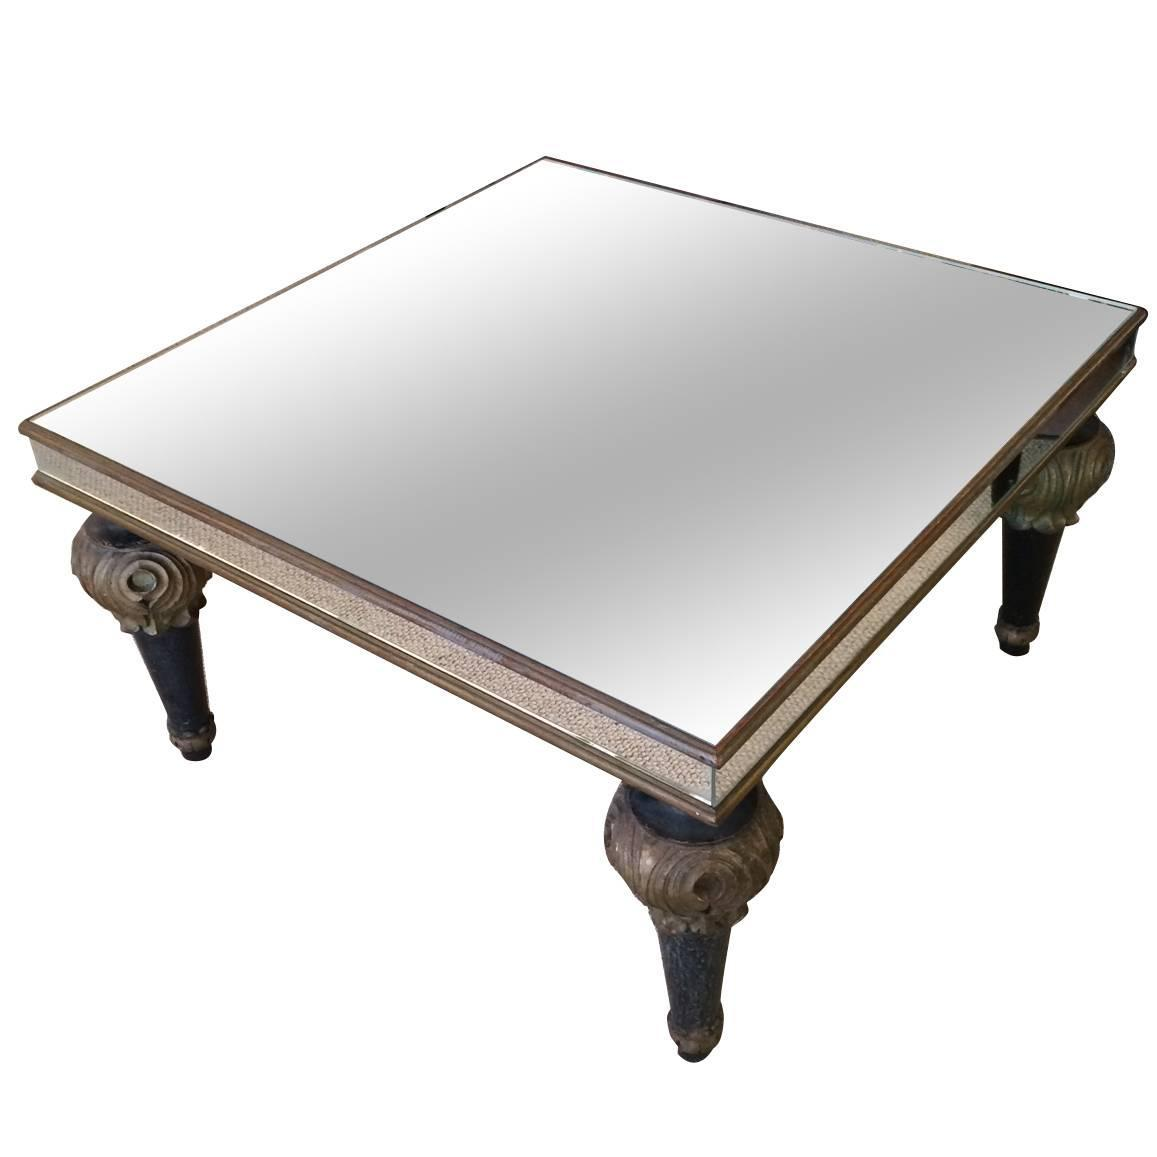 Mid Century Mirrored Coffee Table With Decorative Wooden Turned Legs At 1stdibs